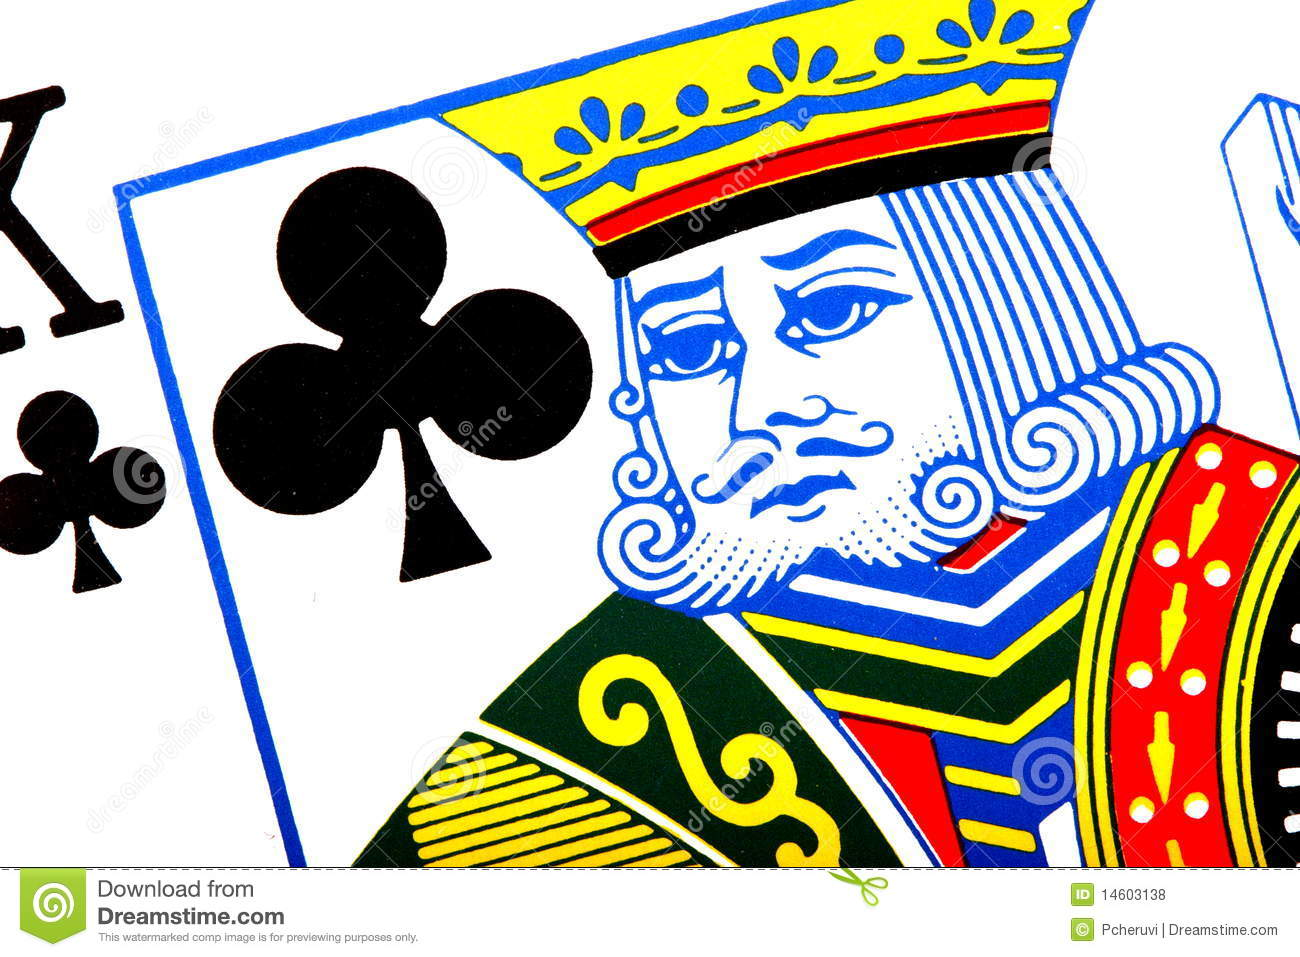 King Of Clubs Royalty Free Stock Photos - Image: 14603138